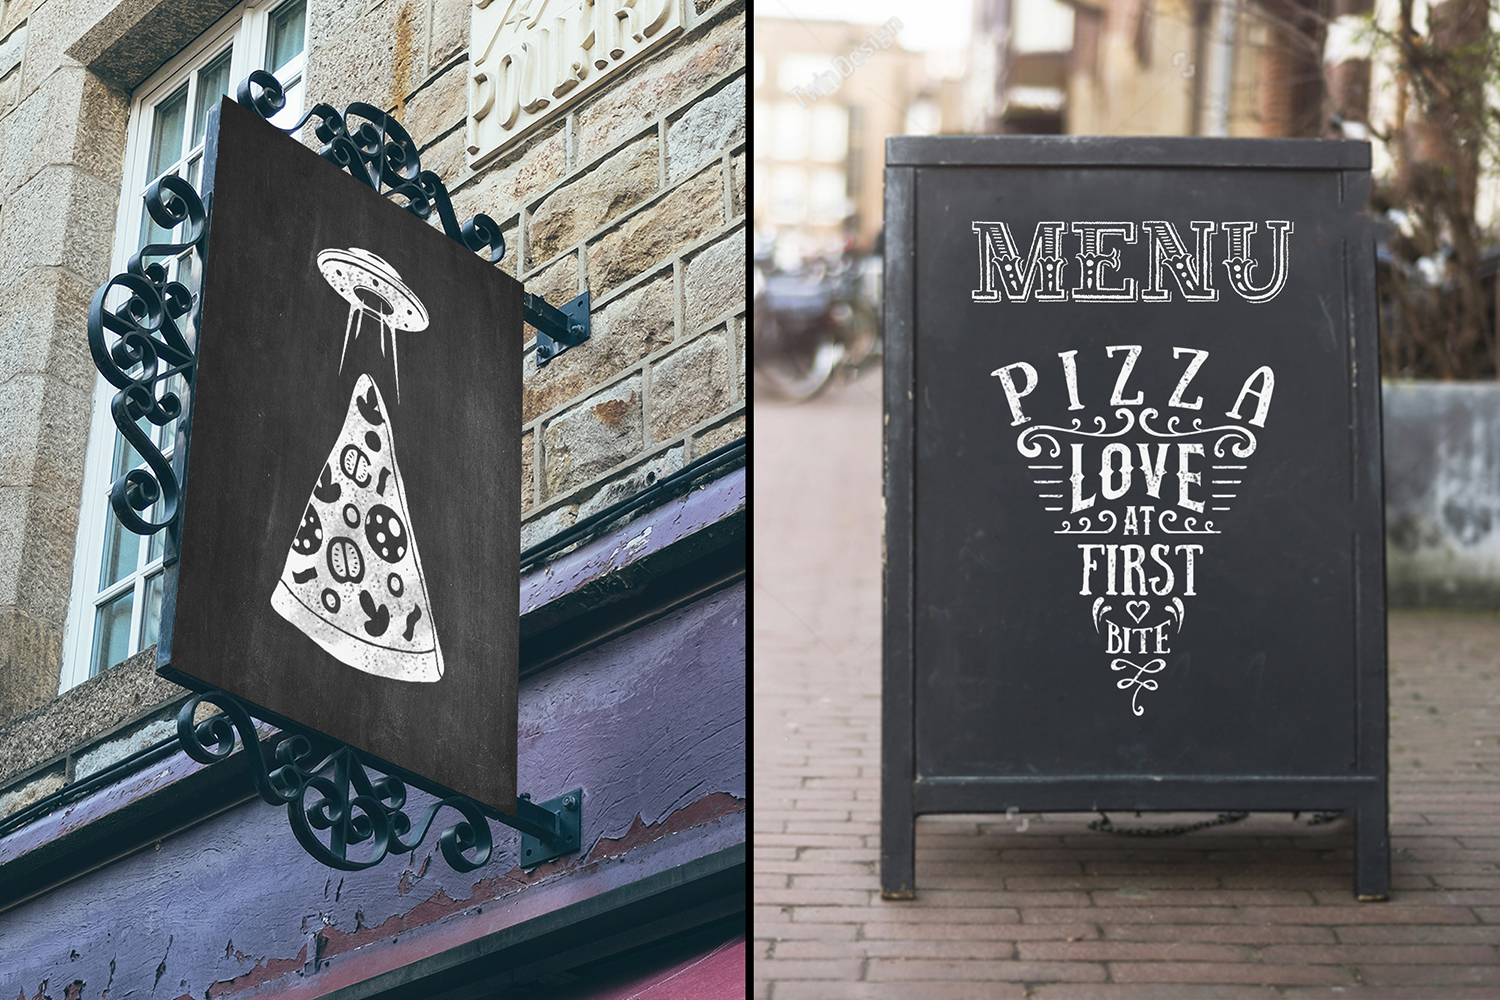 6 Hand Drawn Pizza Slice Badges Graphic Illustrations By Cosmic Store - Image 6